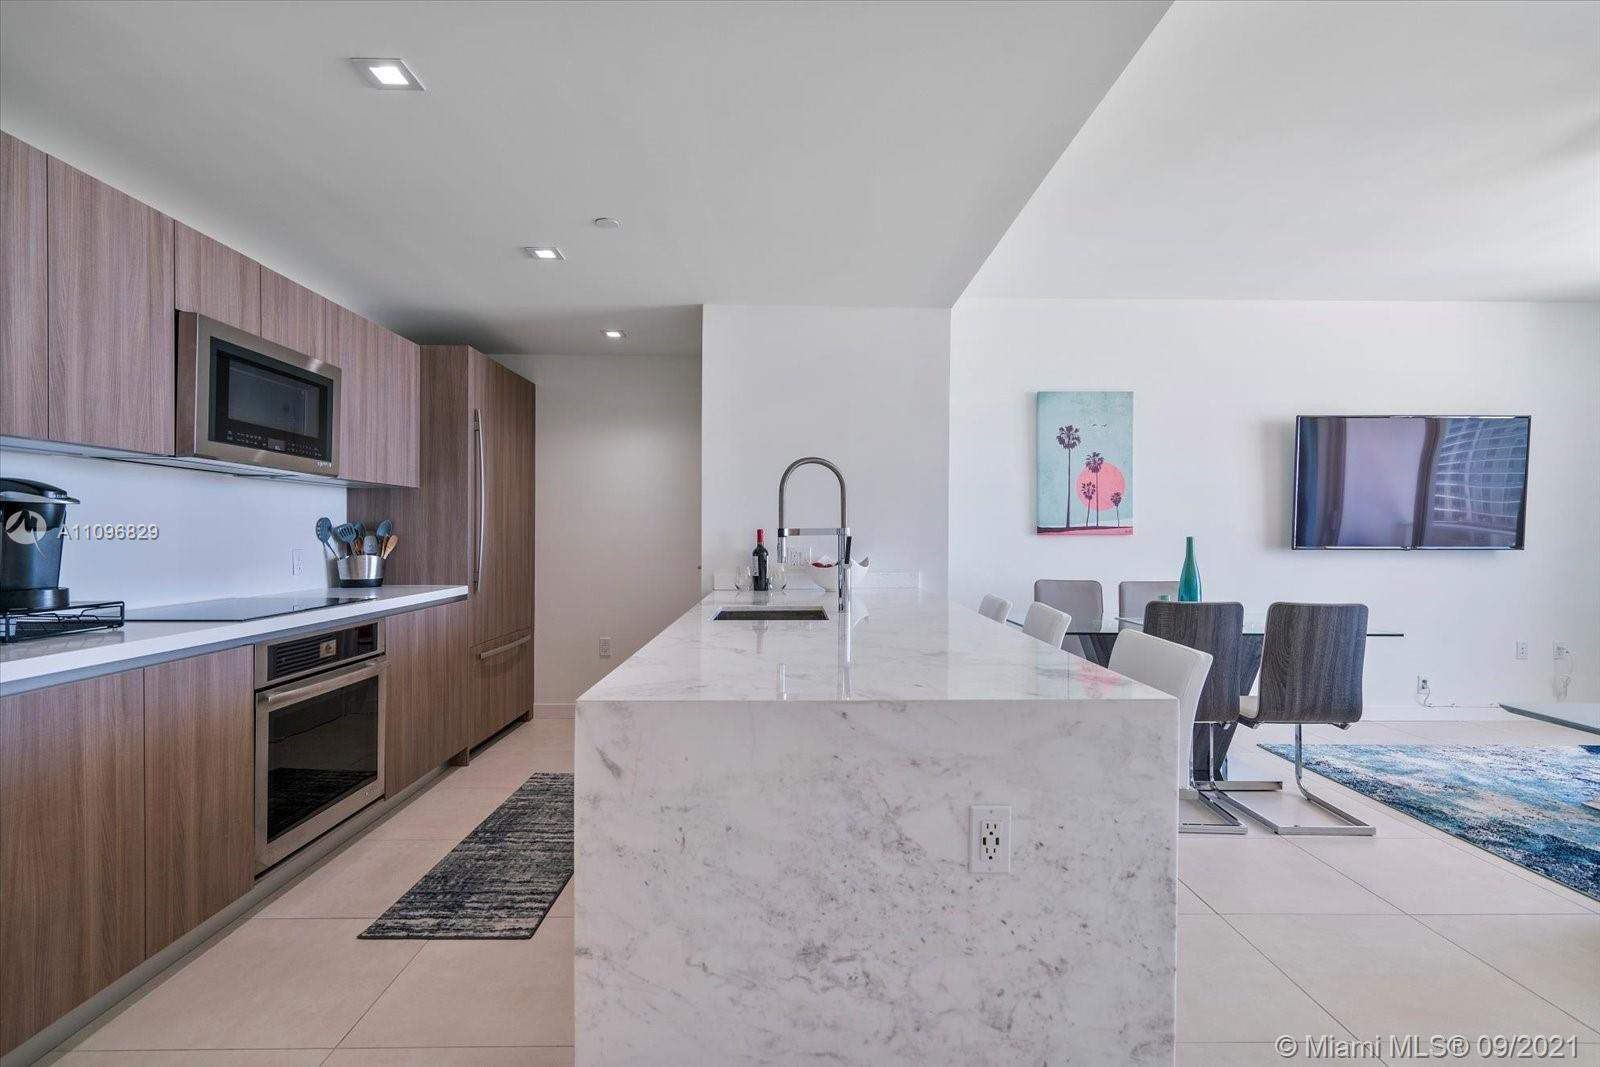 Beautiful 1 Bedroom + Bathroom + DEN only steps to the BEACH! Welcome to 5-star resort living at Tif